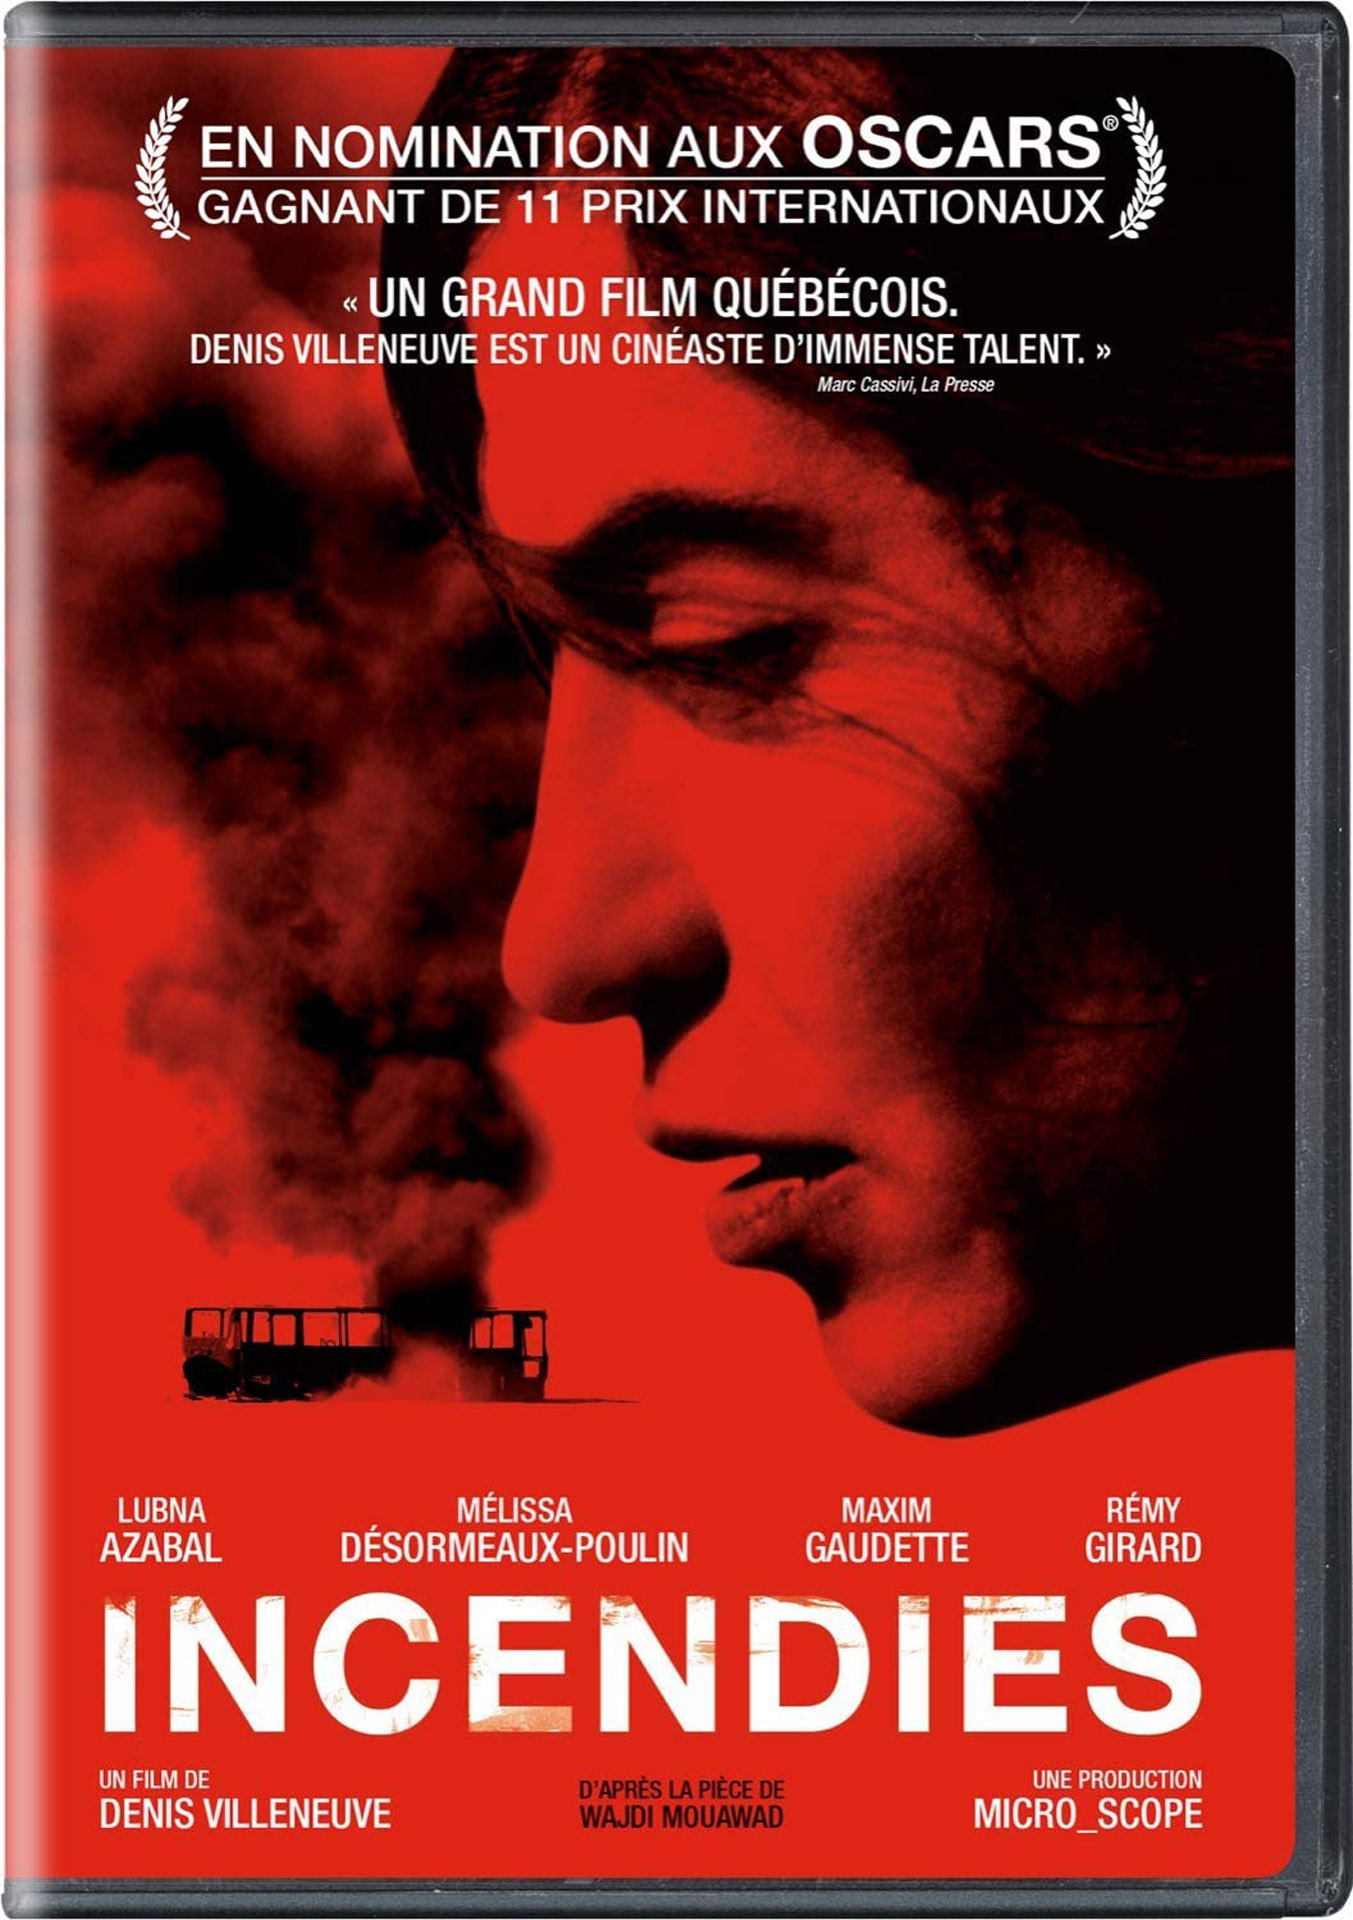 poster of Incendies movie by Denis Villeneuve